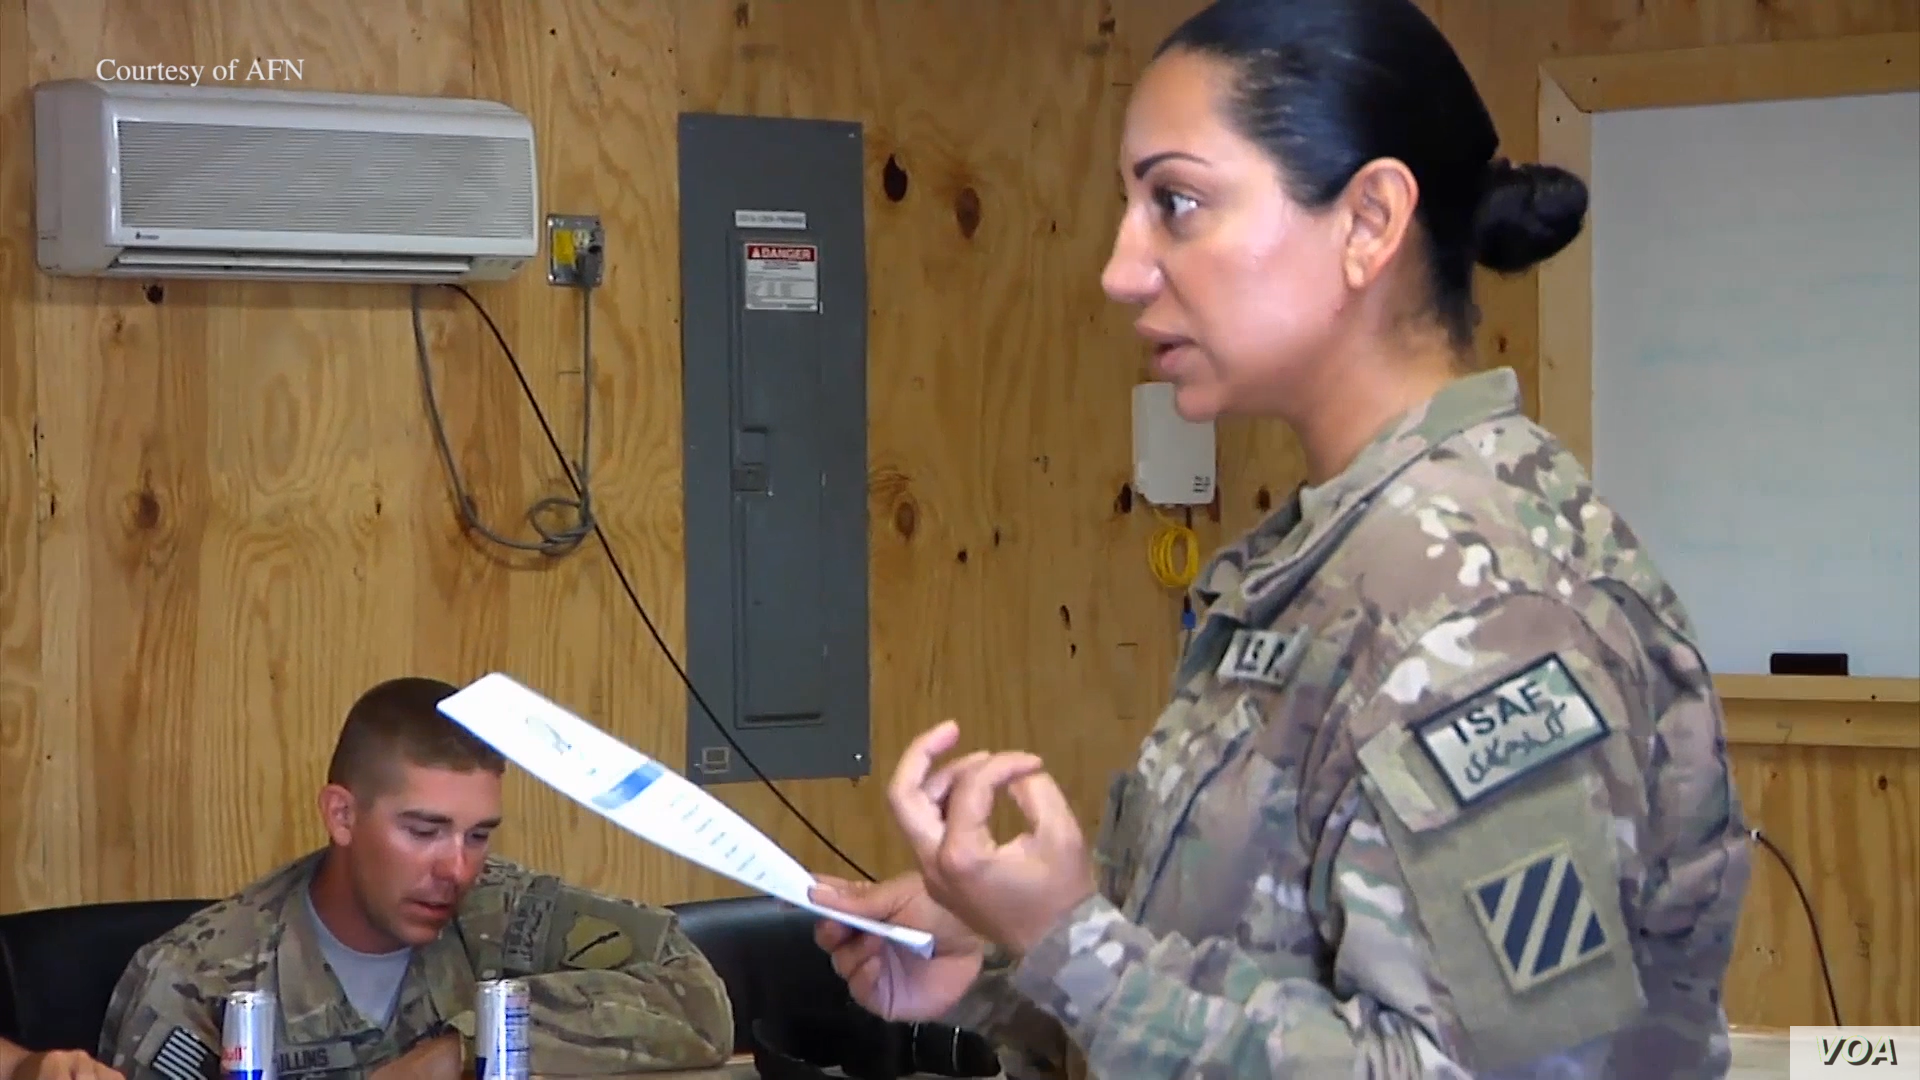 Once a US Soldier, Iranian Immigrant Now Serves Veterans